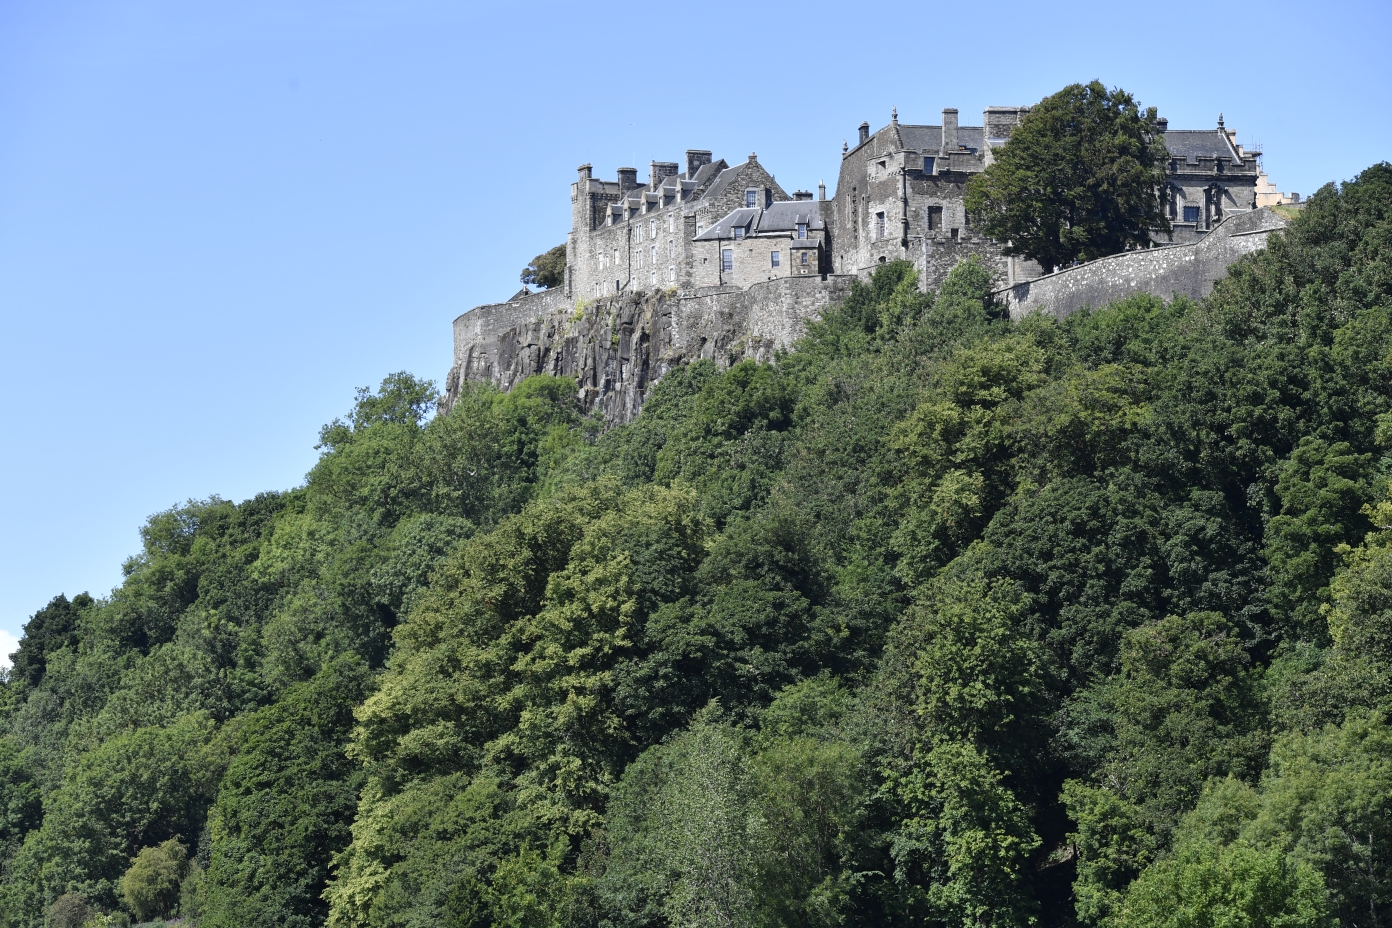 Elder Jeffrey R. Holland presented a Scottish museum with the exact replica of an artefact that became linked with Scotland's religious history. The event was held in Stirling, Scotland, home of the iconic Stirling Castle.